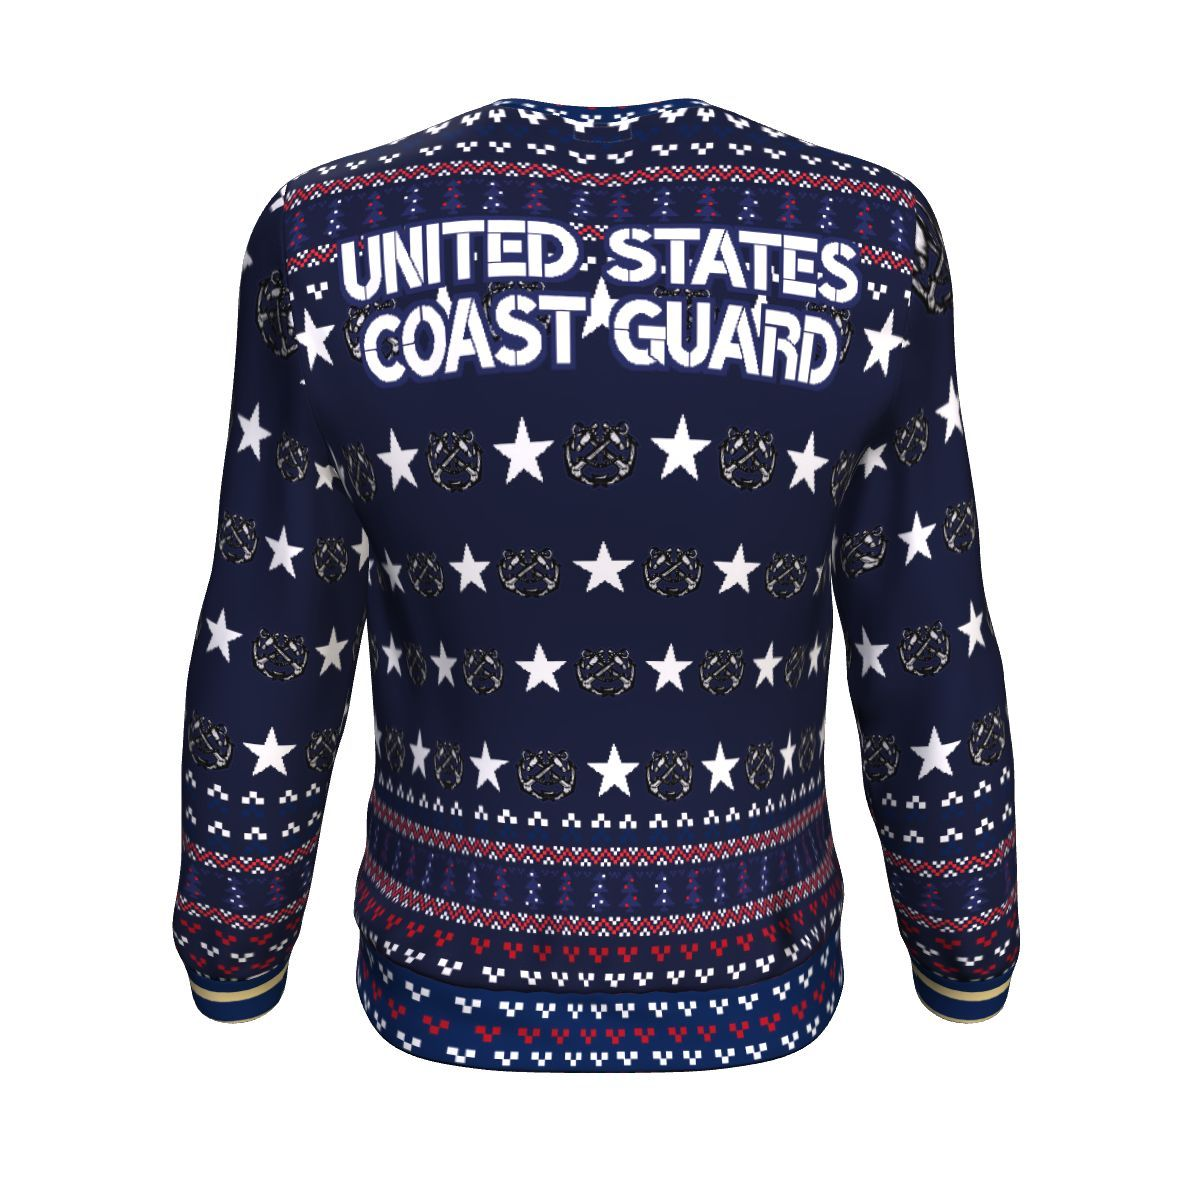 united states coast guard all over printed ugly christmas sweater 5